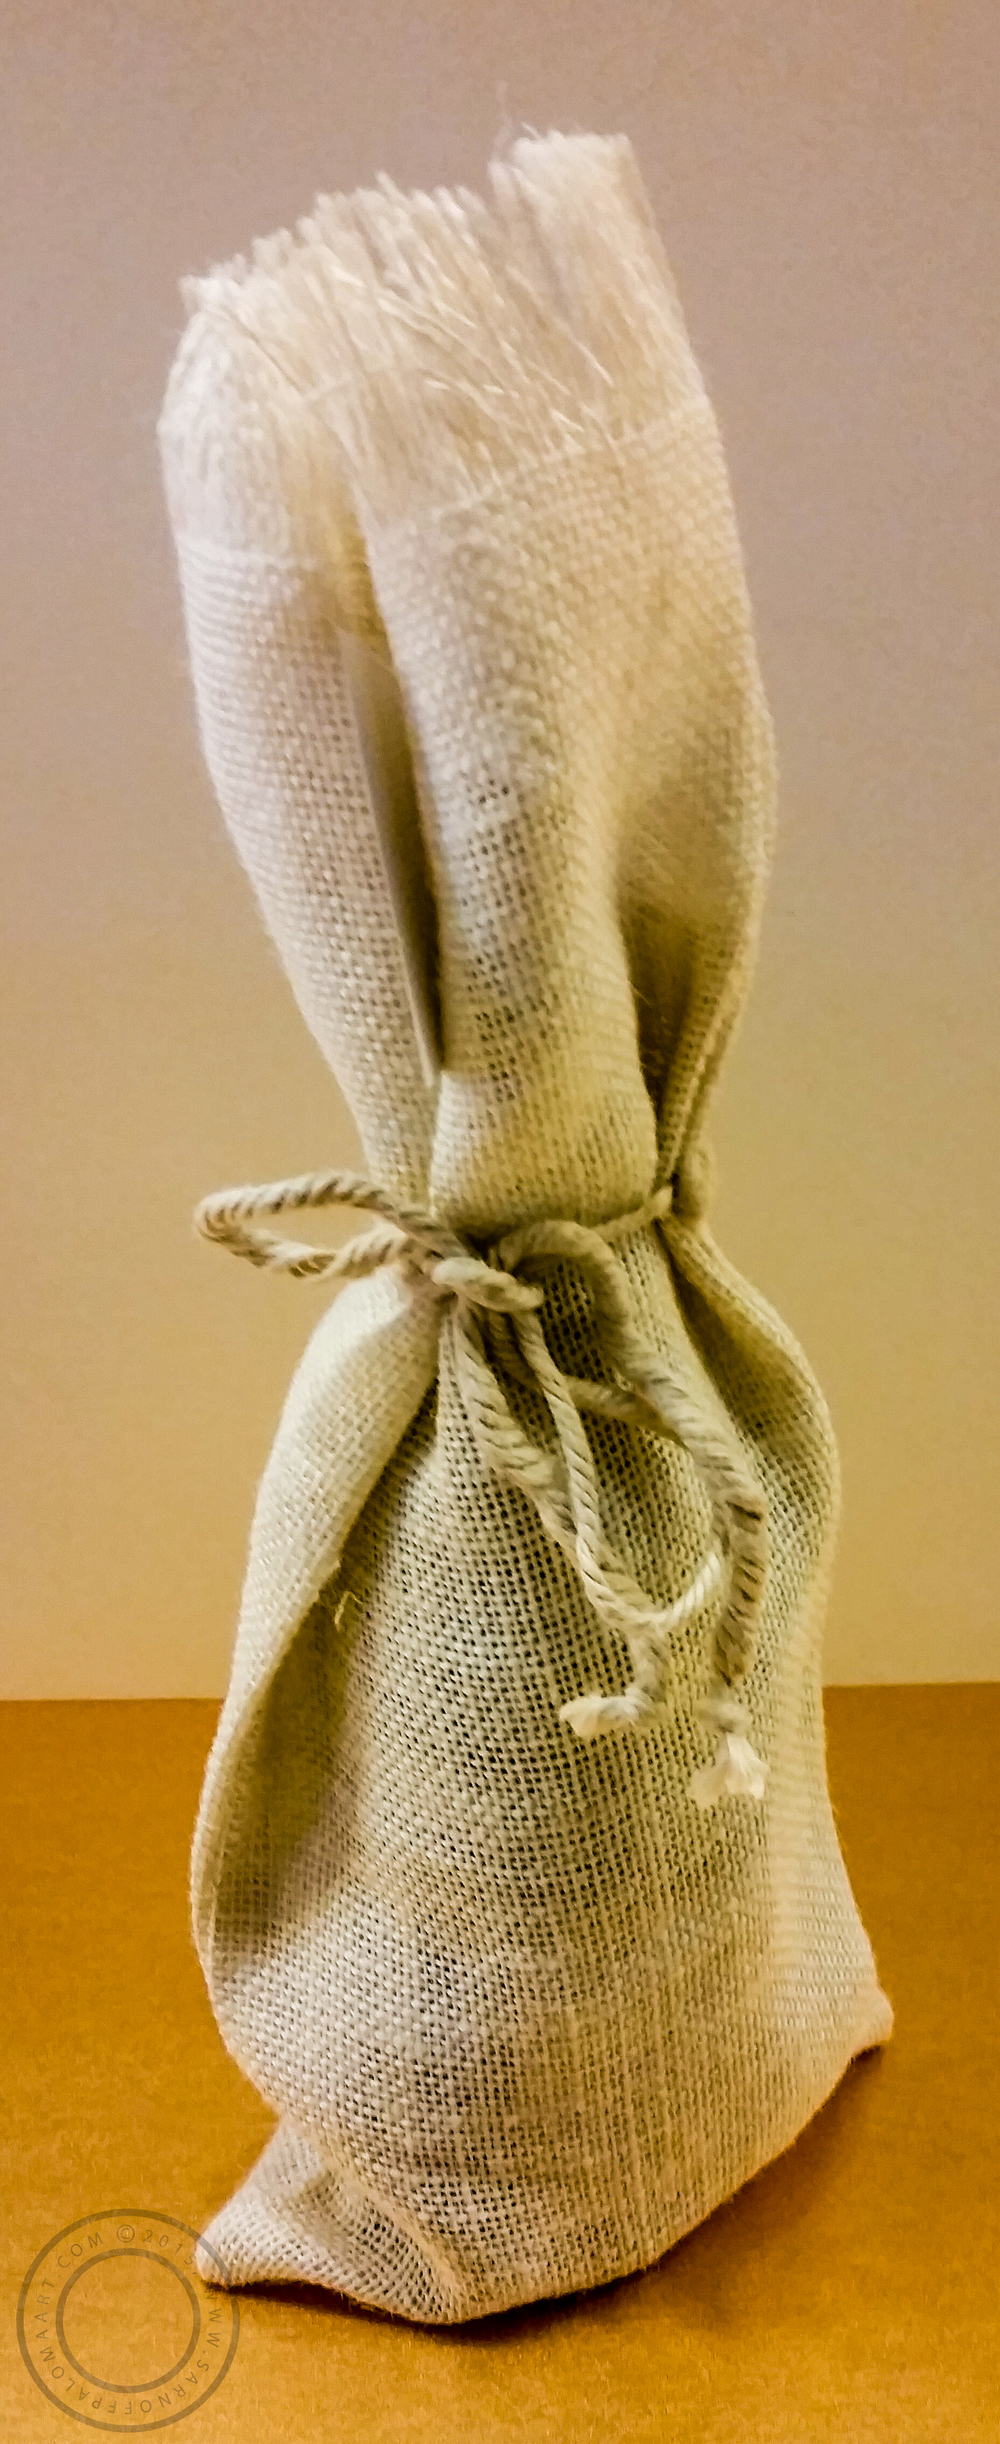 Burlap wine bag-$5.50